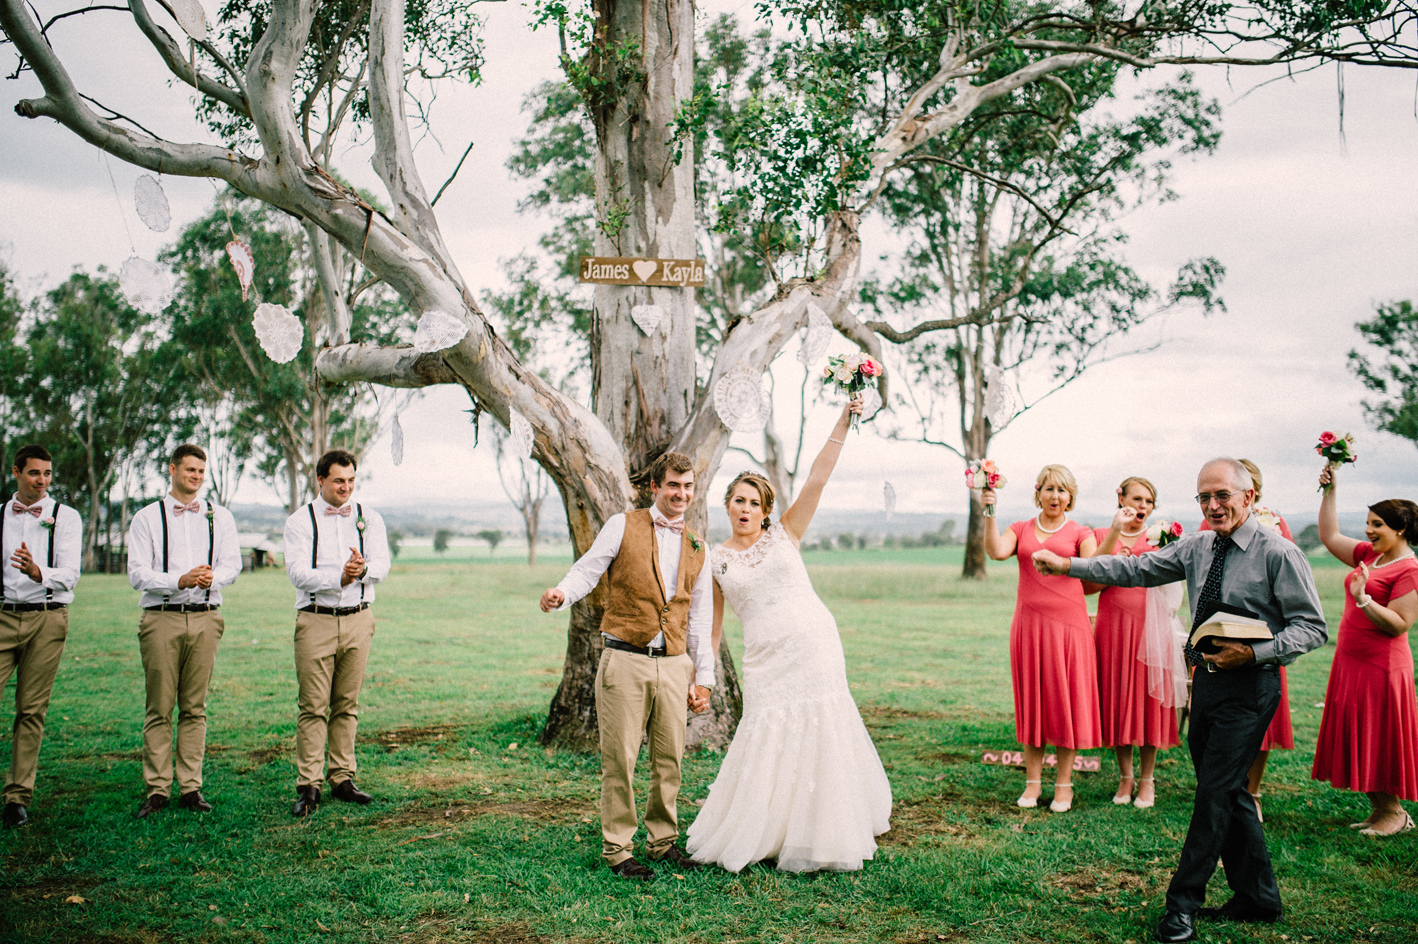 068-kayla-james-beaudesert-wedding-sophie-baker-photography